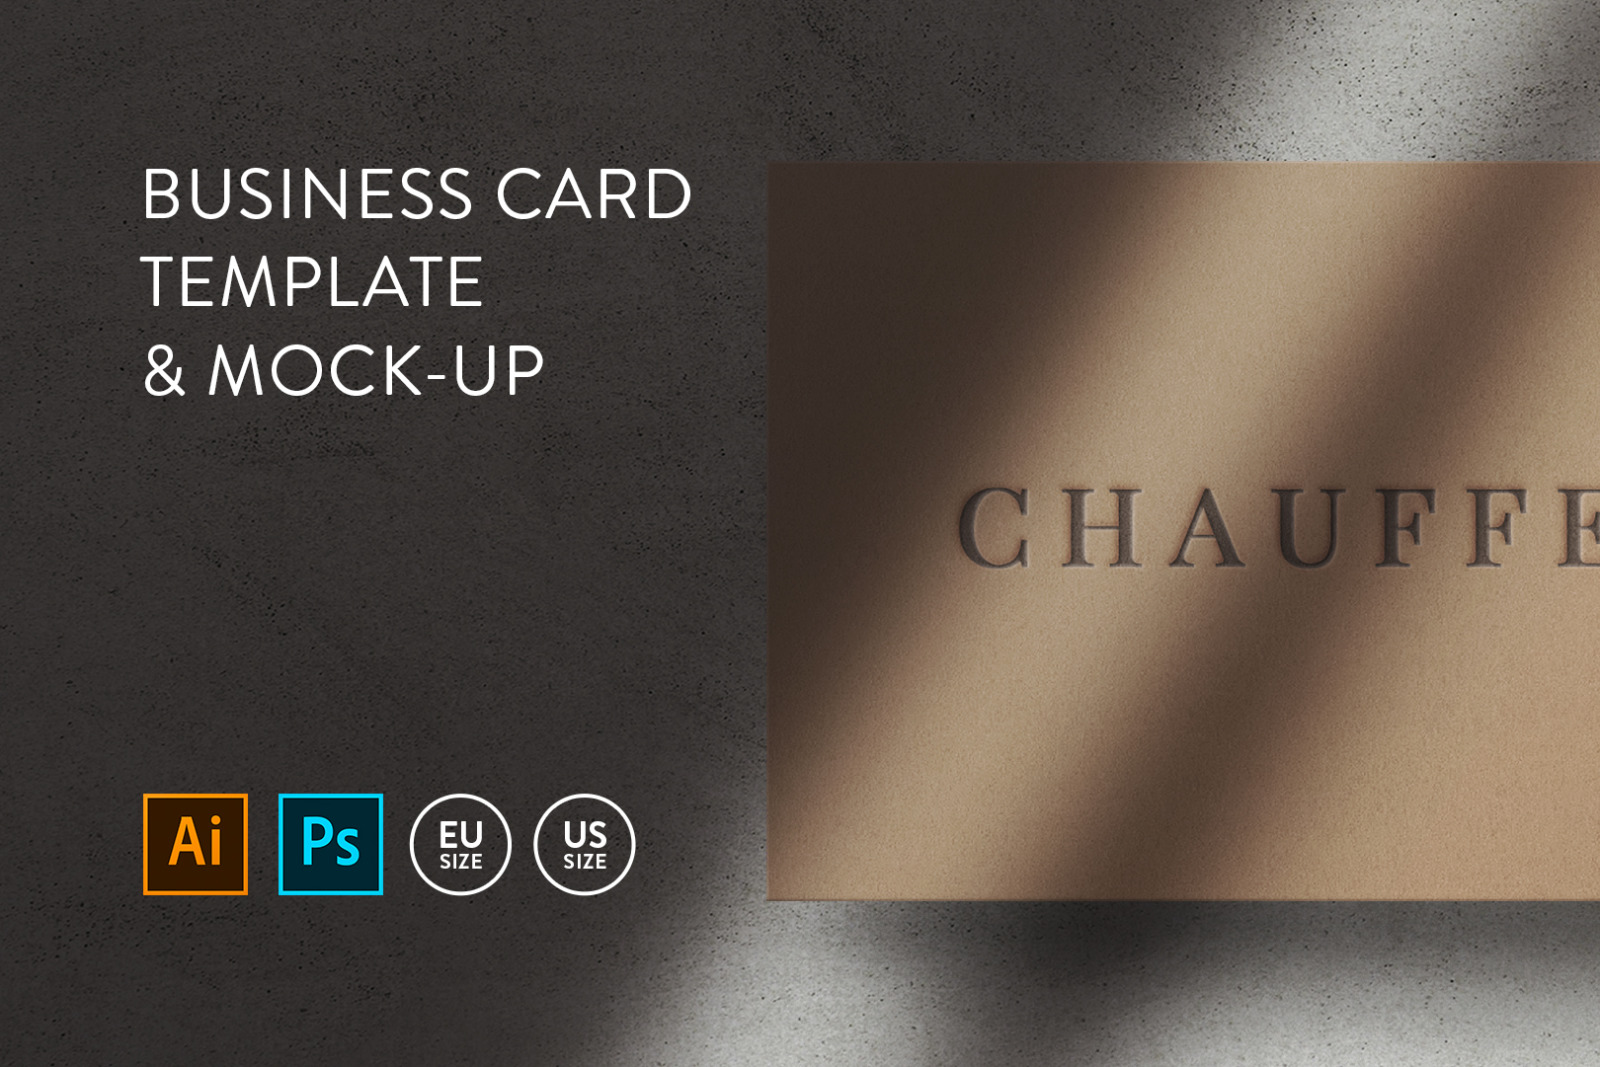 Business card Template & Mock-up #47